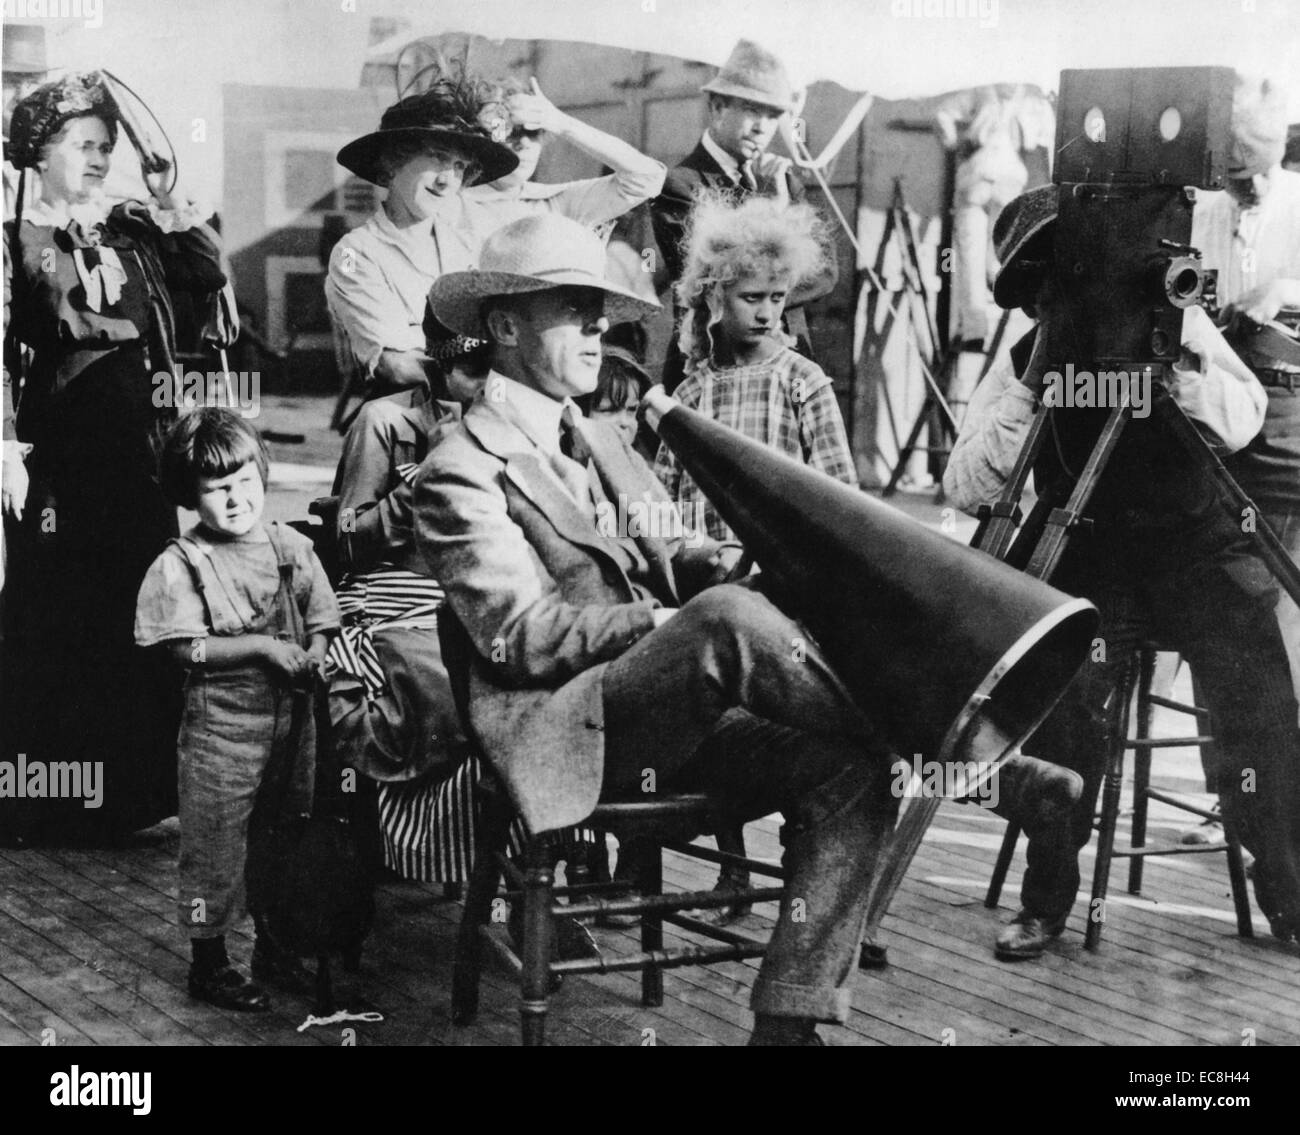 D.W.GRIFFITH (1875-1948) American film director about 1910 - Stock Image